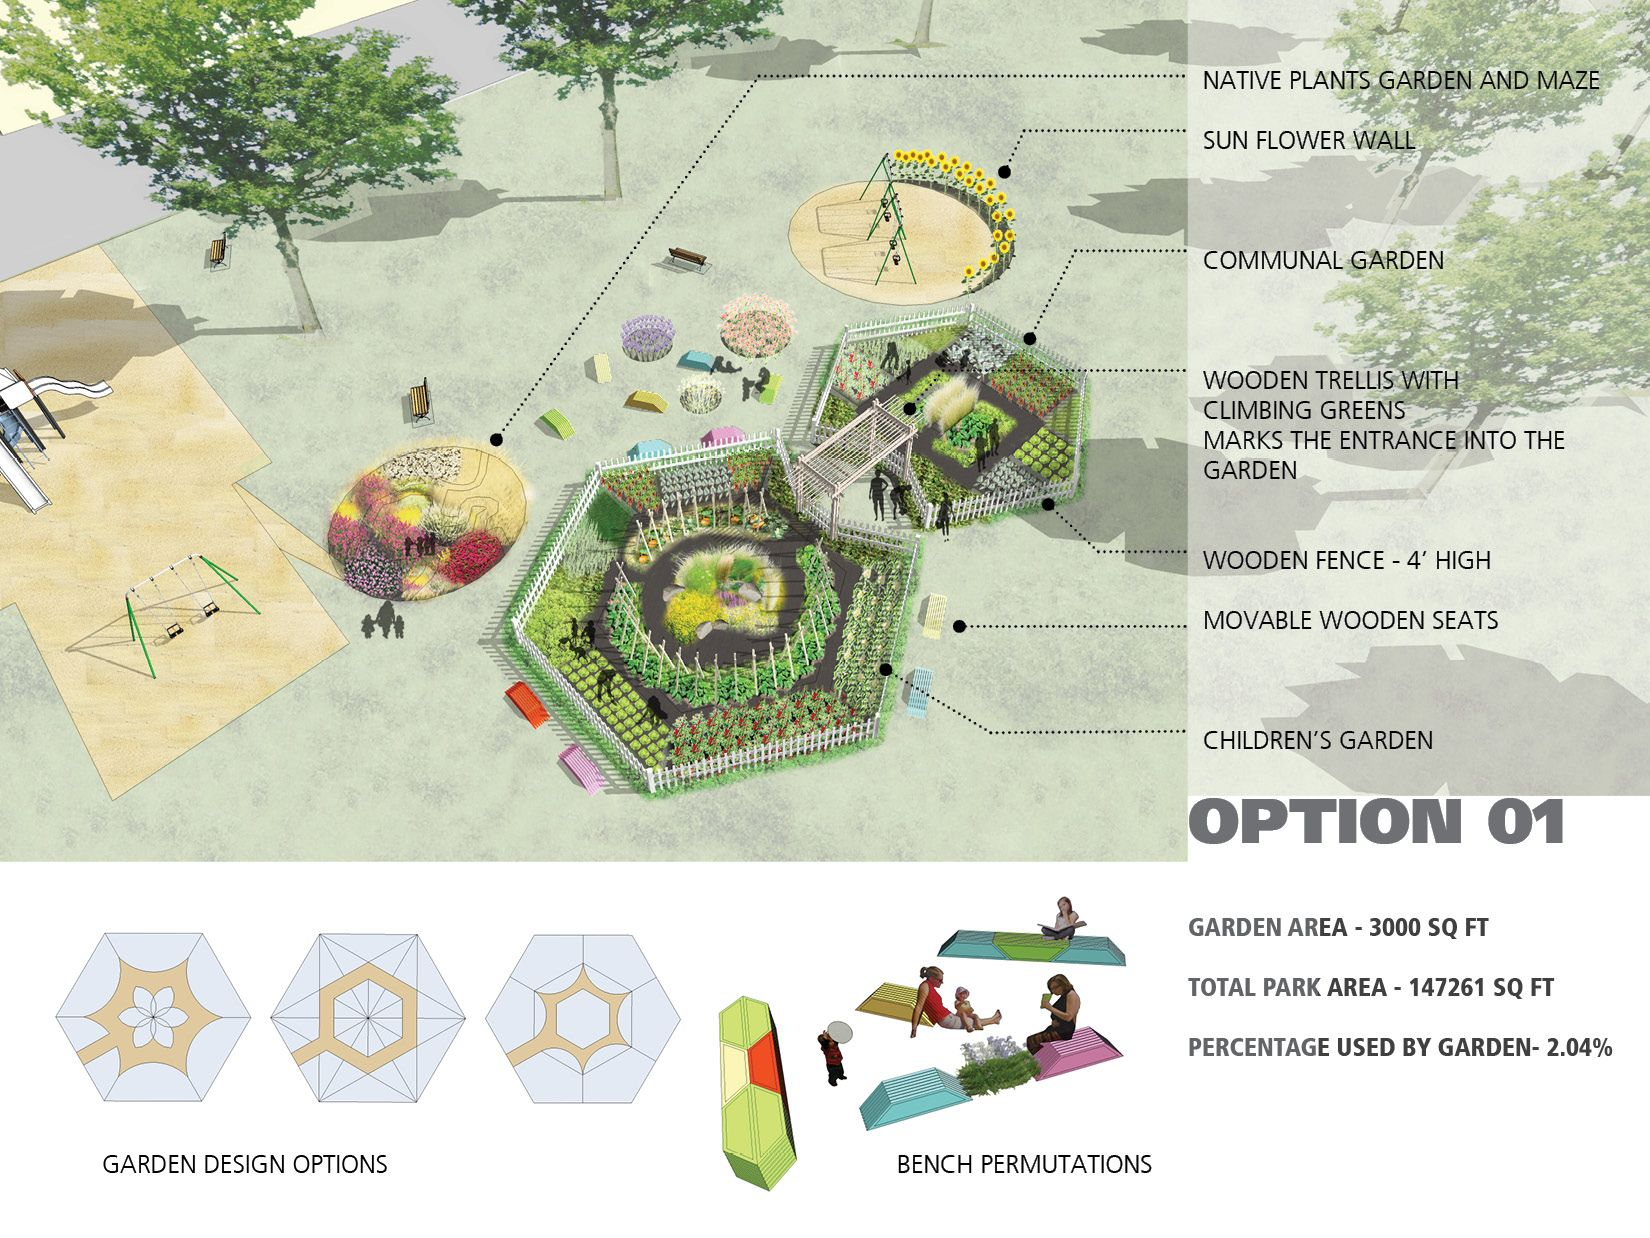 community garden layout - Google Search | Summer 2015 Studio ...